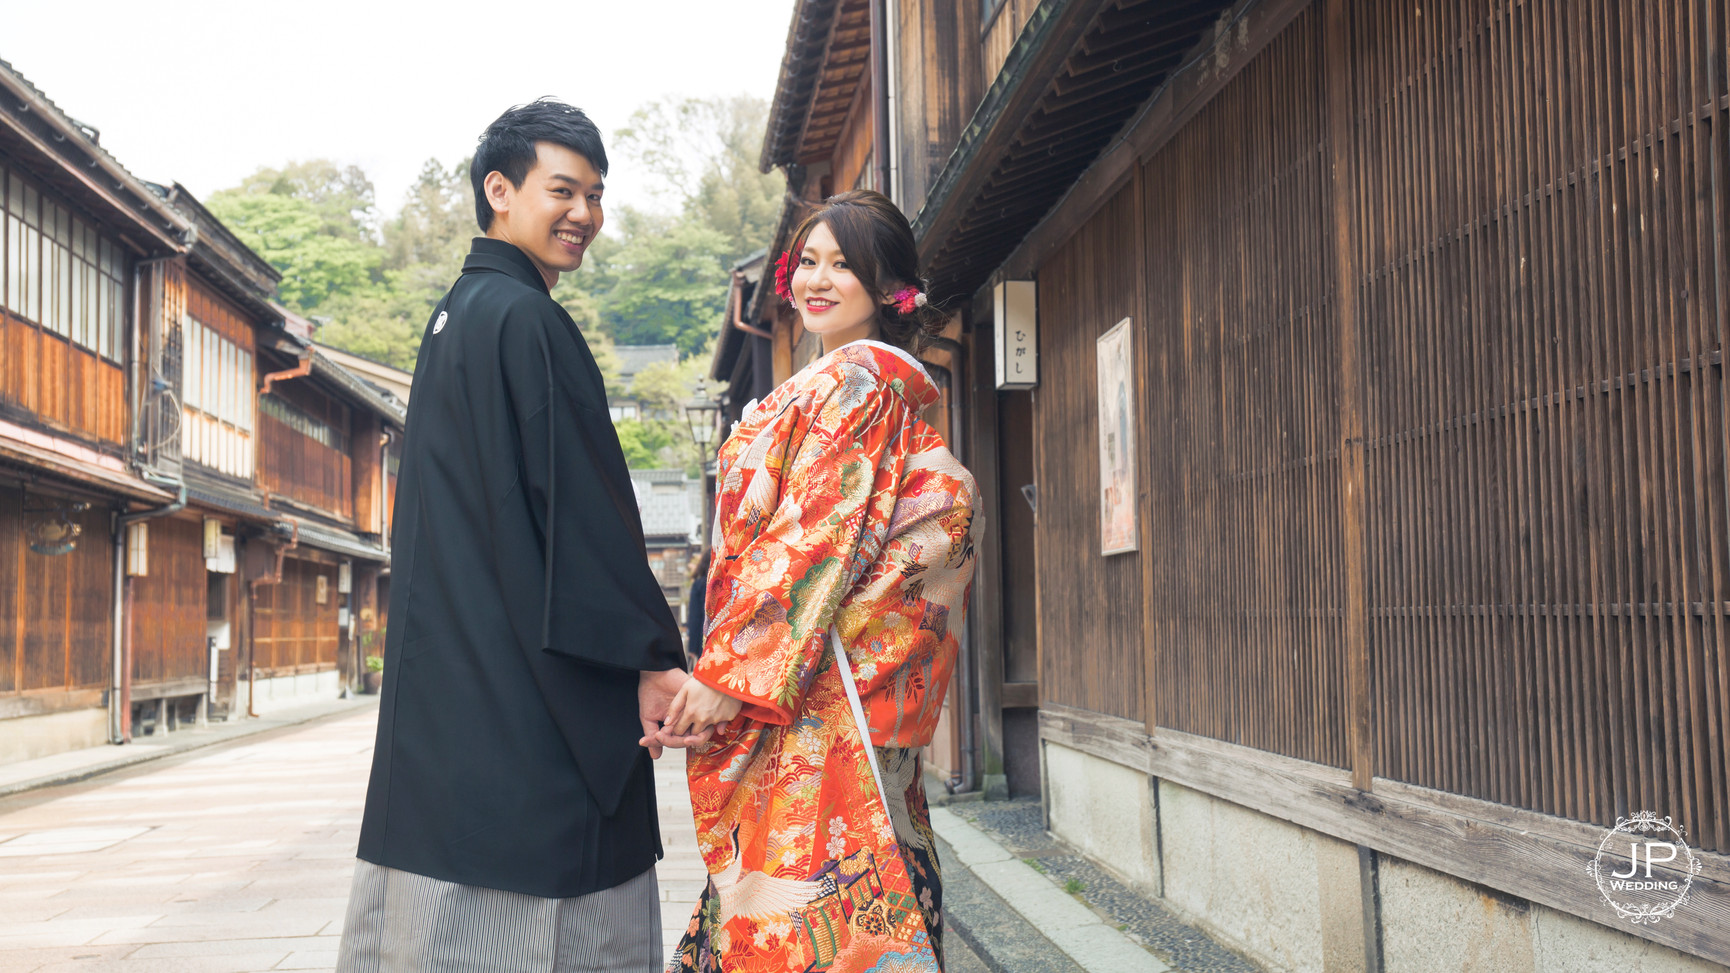 JP_Wedding-Japan_Prewedding_Package_HK-1.jpg